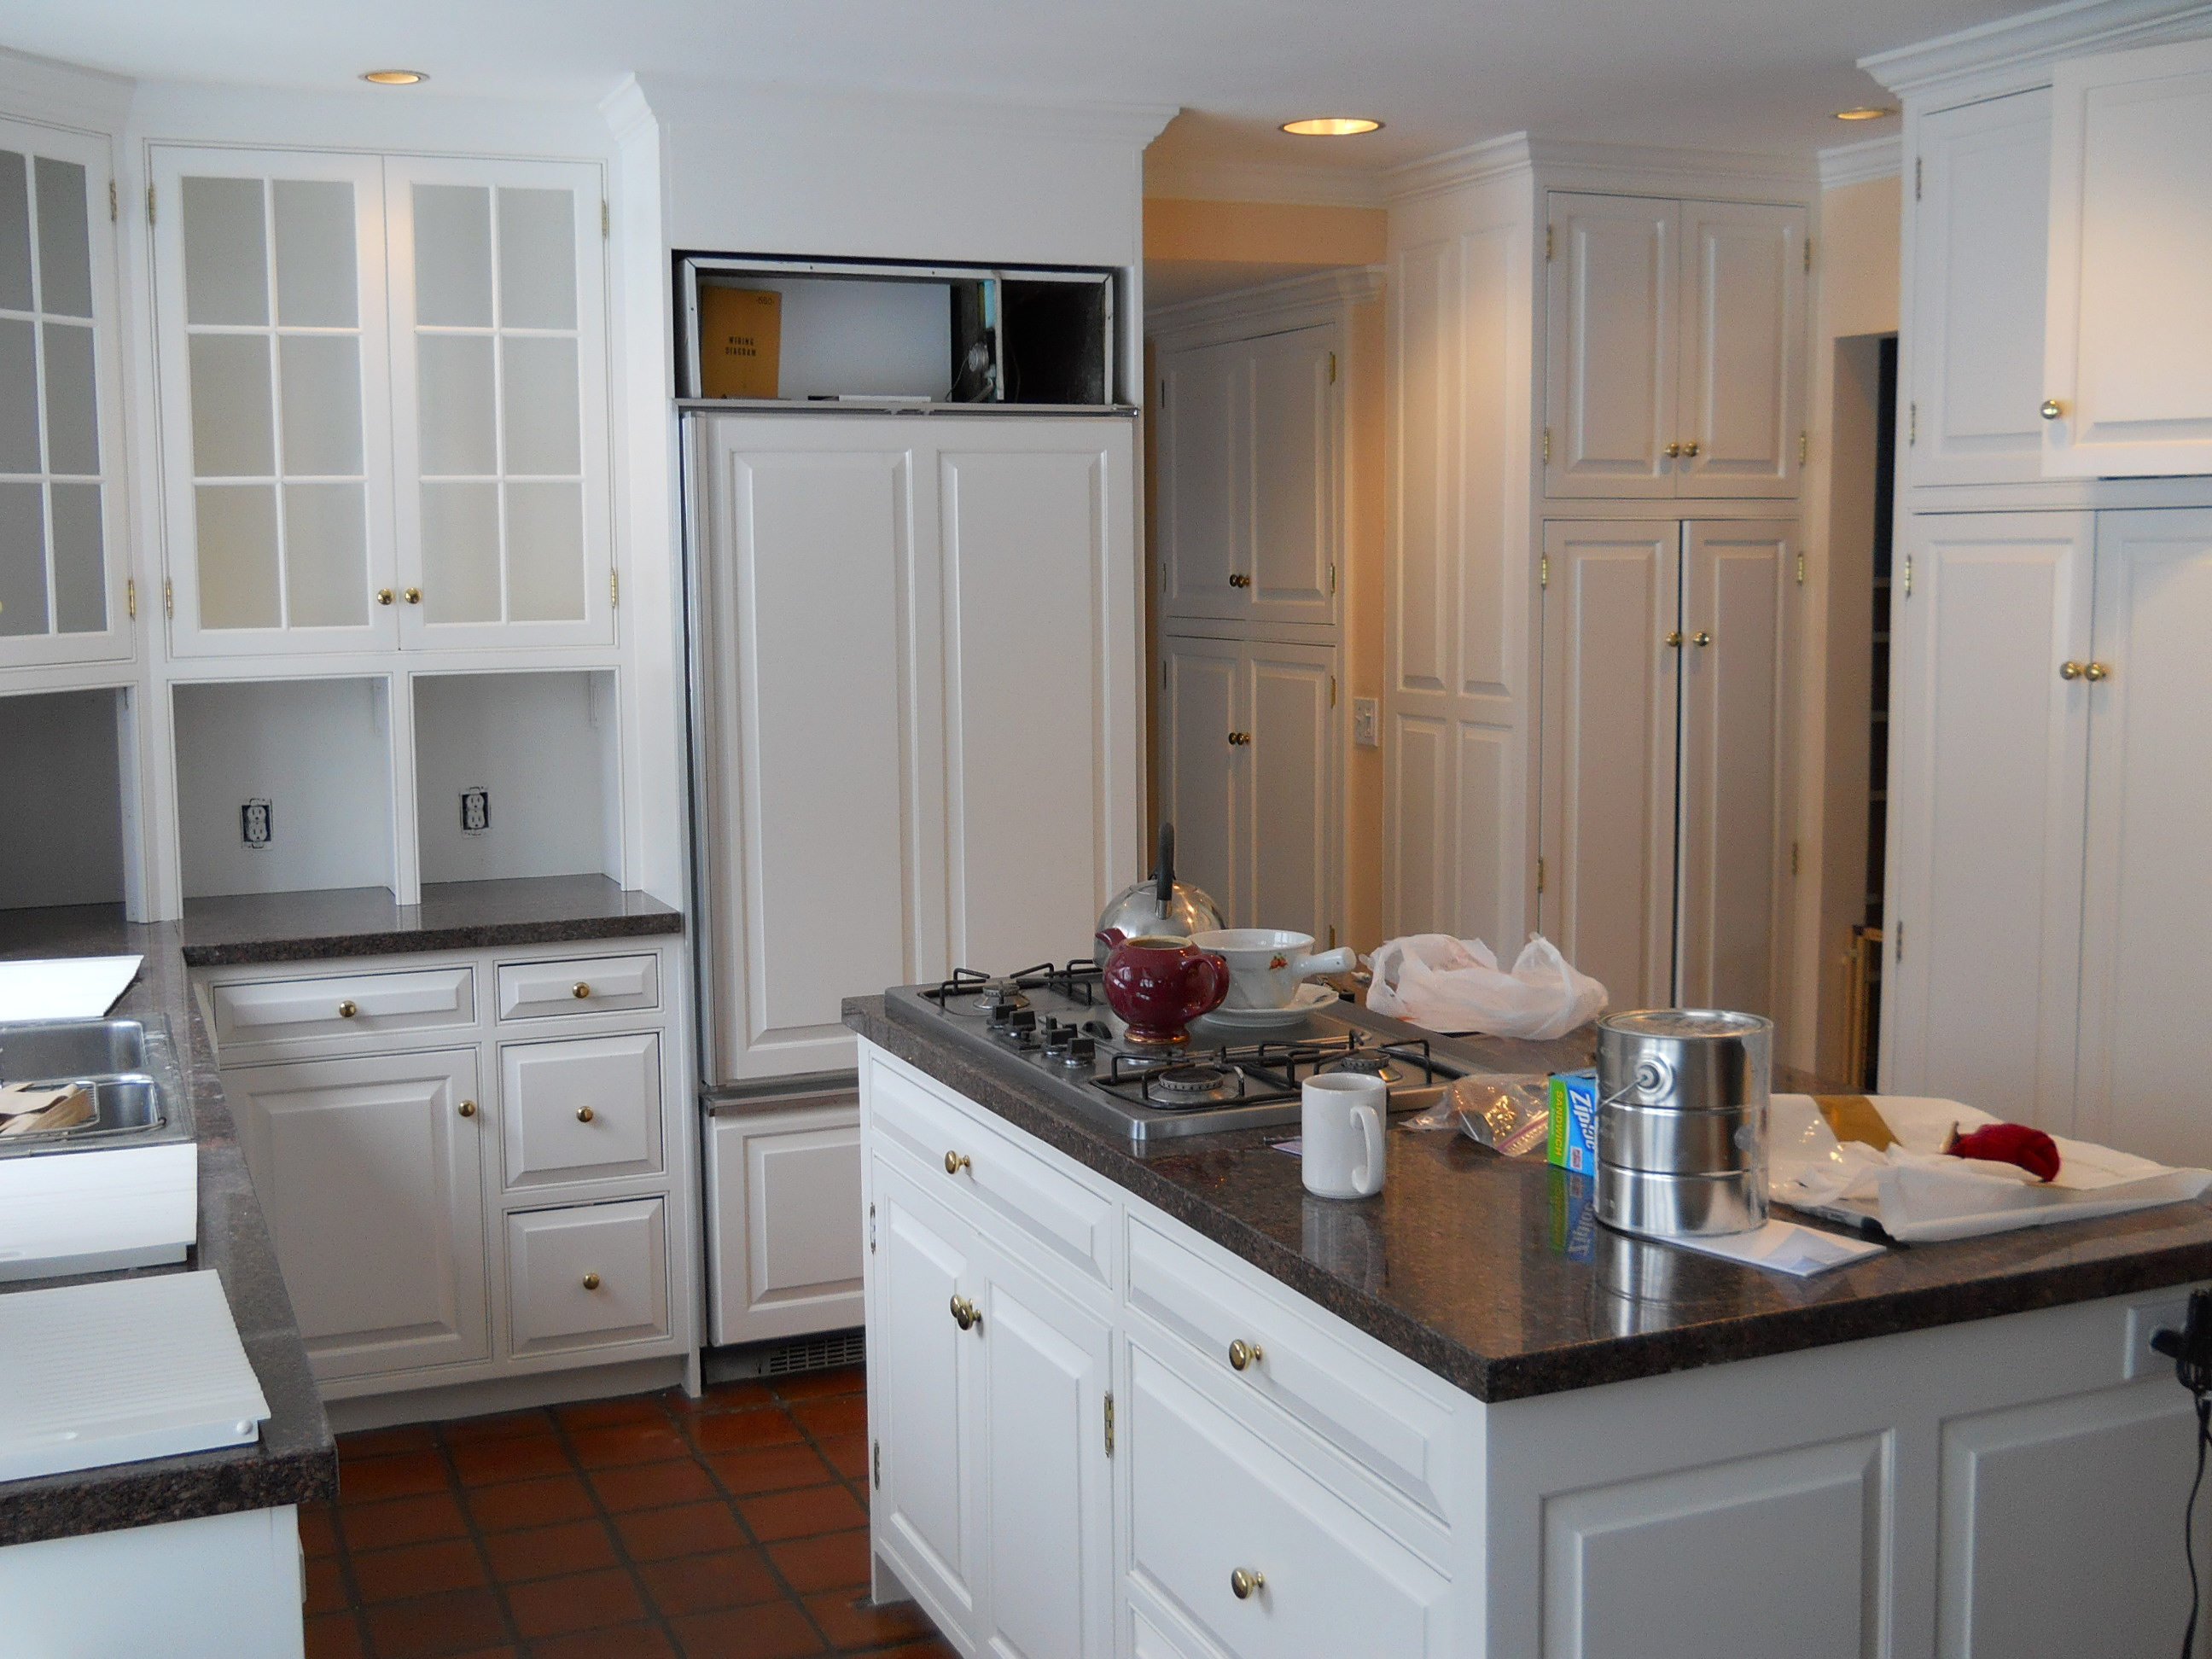 Newest painting trends paint color ideas eco paint inc for Spraying kitchen cabinets white